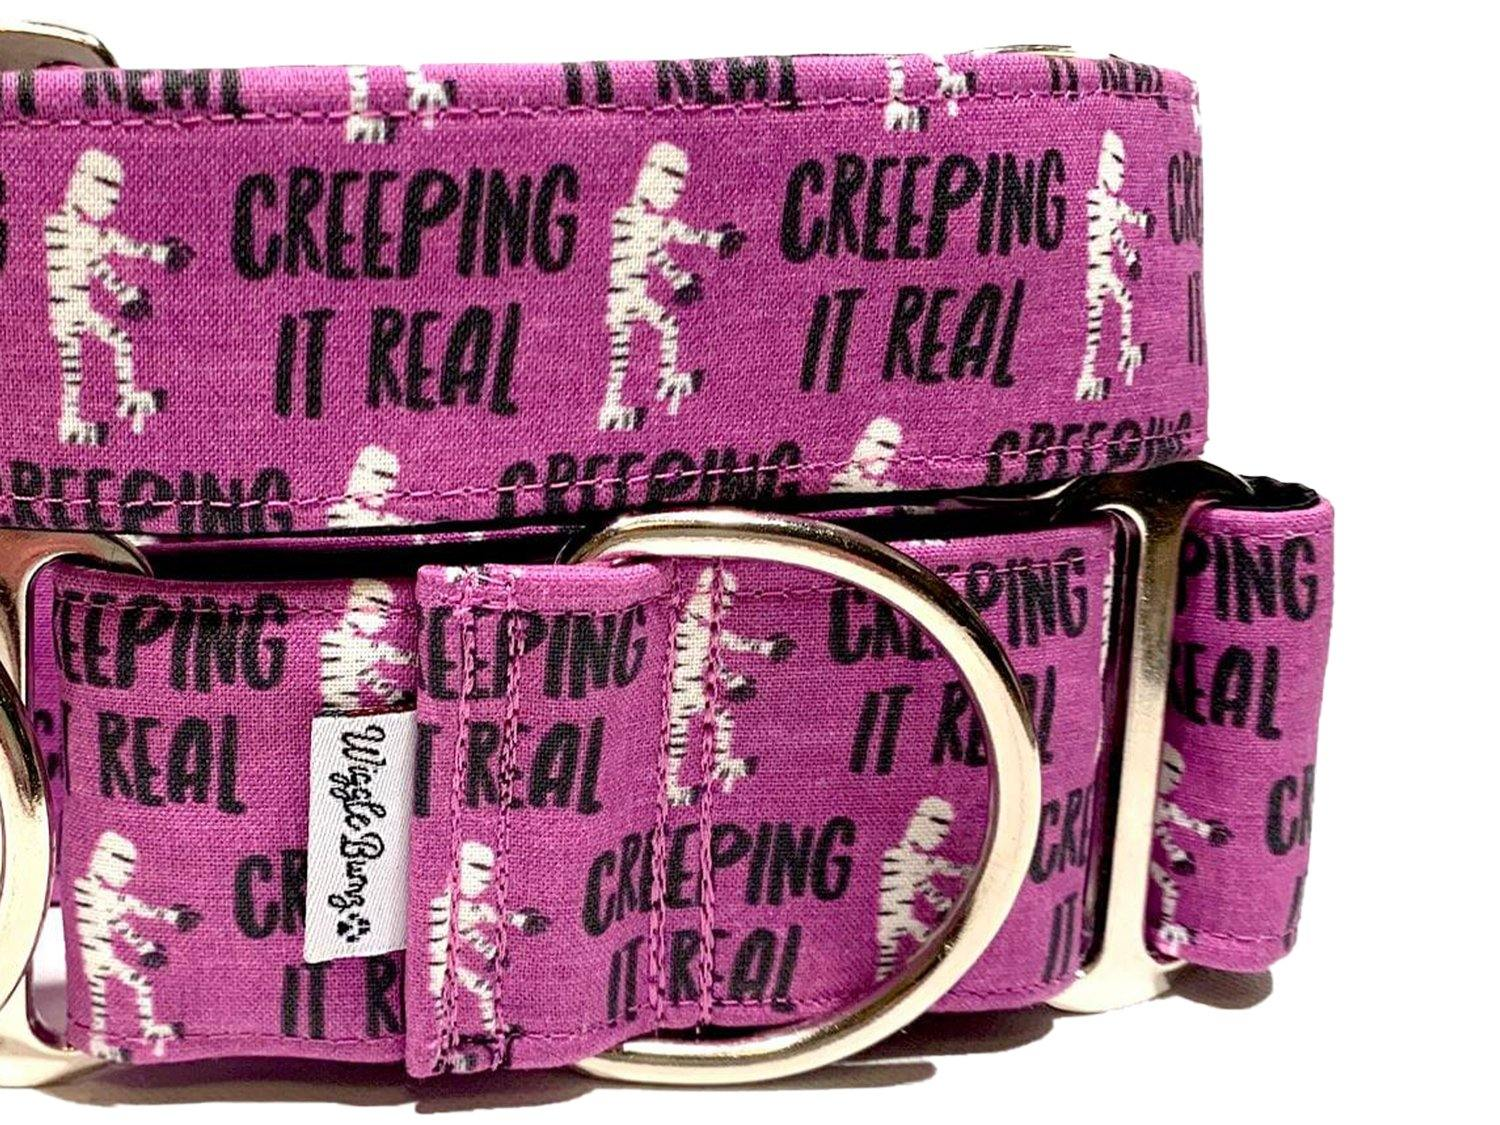 Creeping it Real - BigPawShop